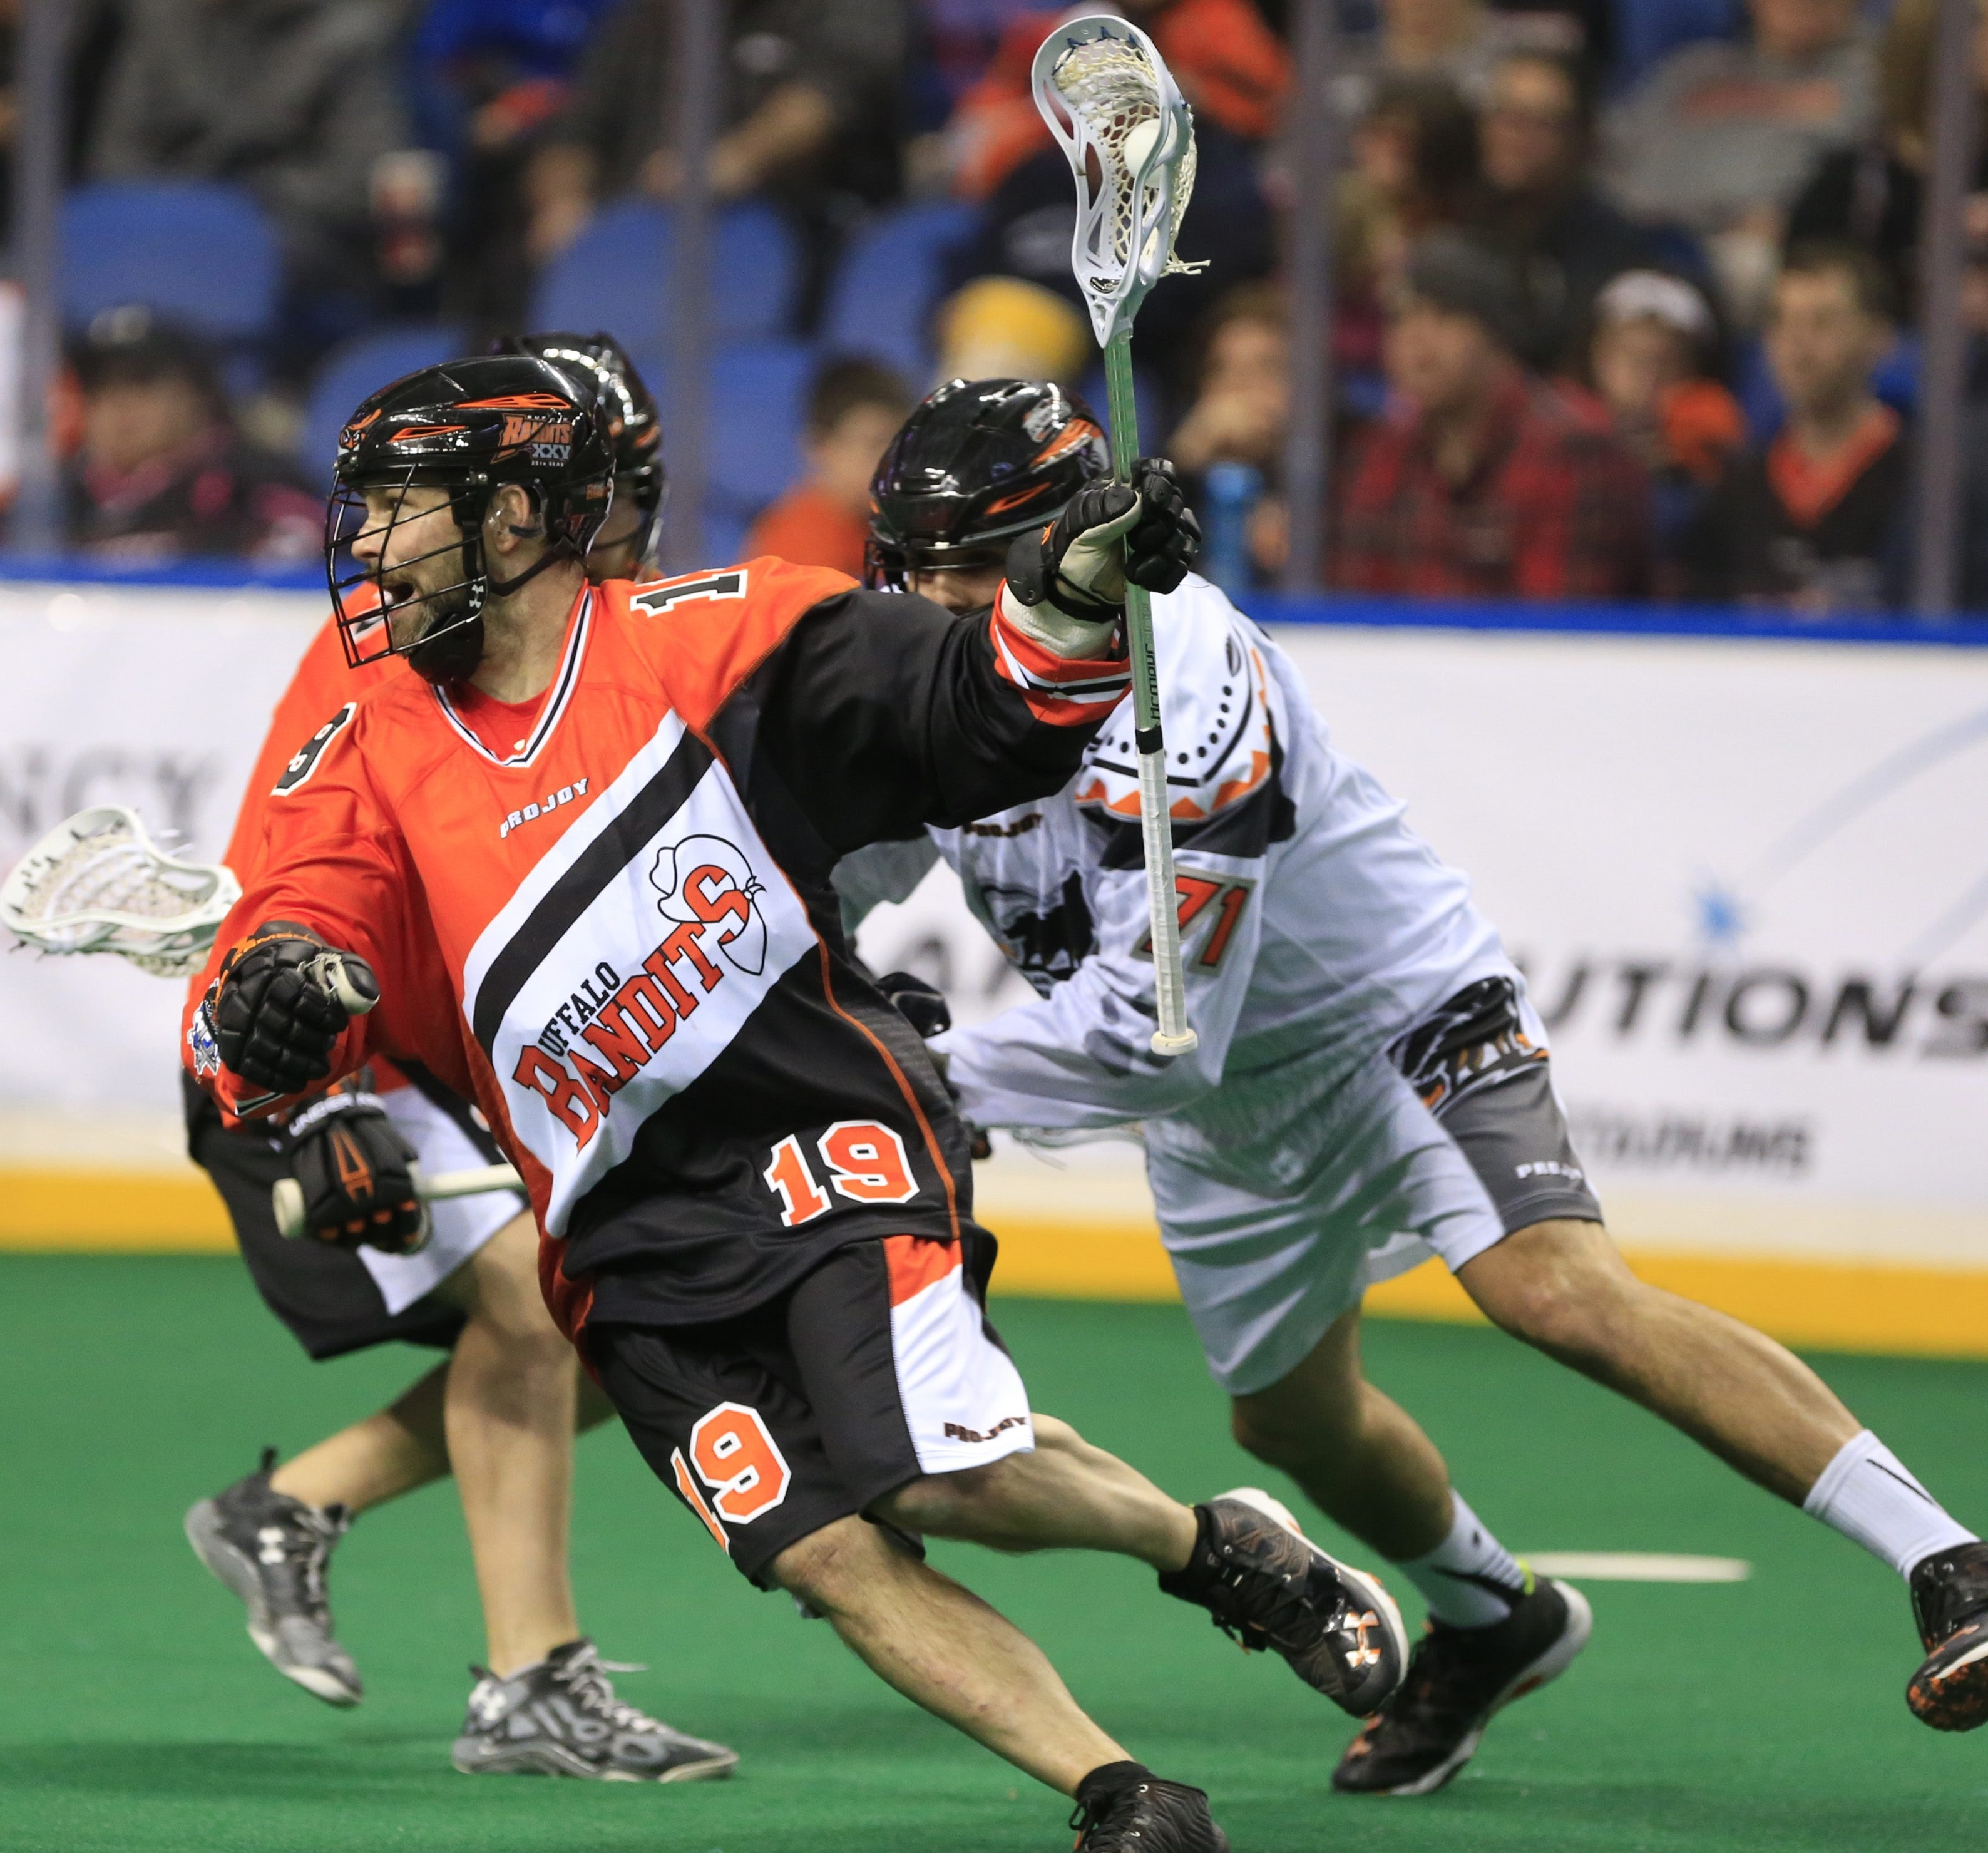 Chad Culp bounced around the National Lacrosse League before making his mark with the Bandits.